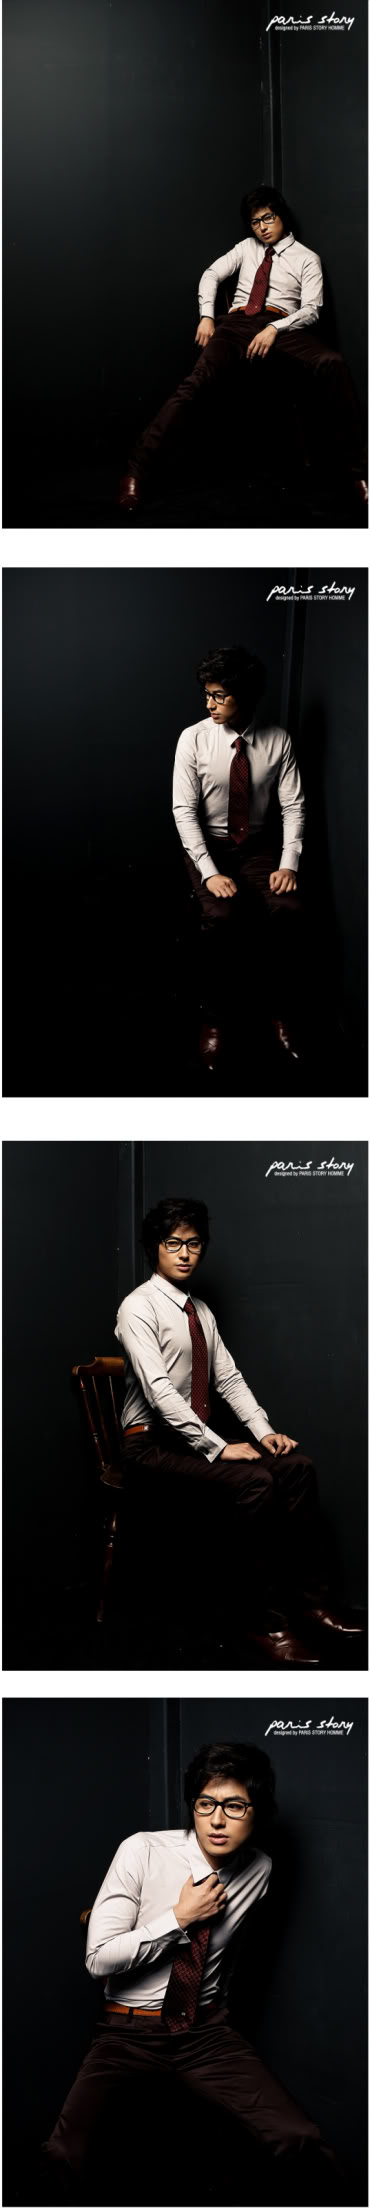 Lee Jee Hoon - Paris Story Hommes Collection I PH85-S-7